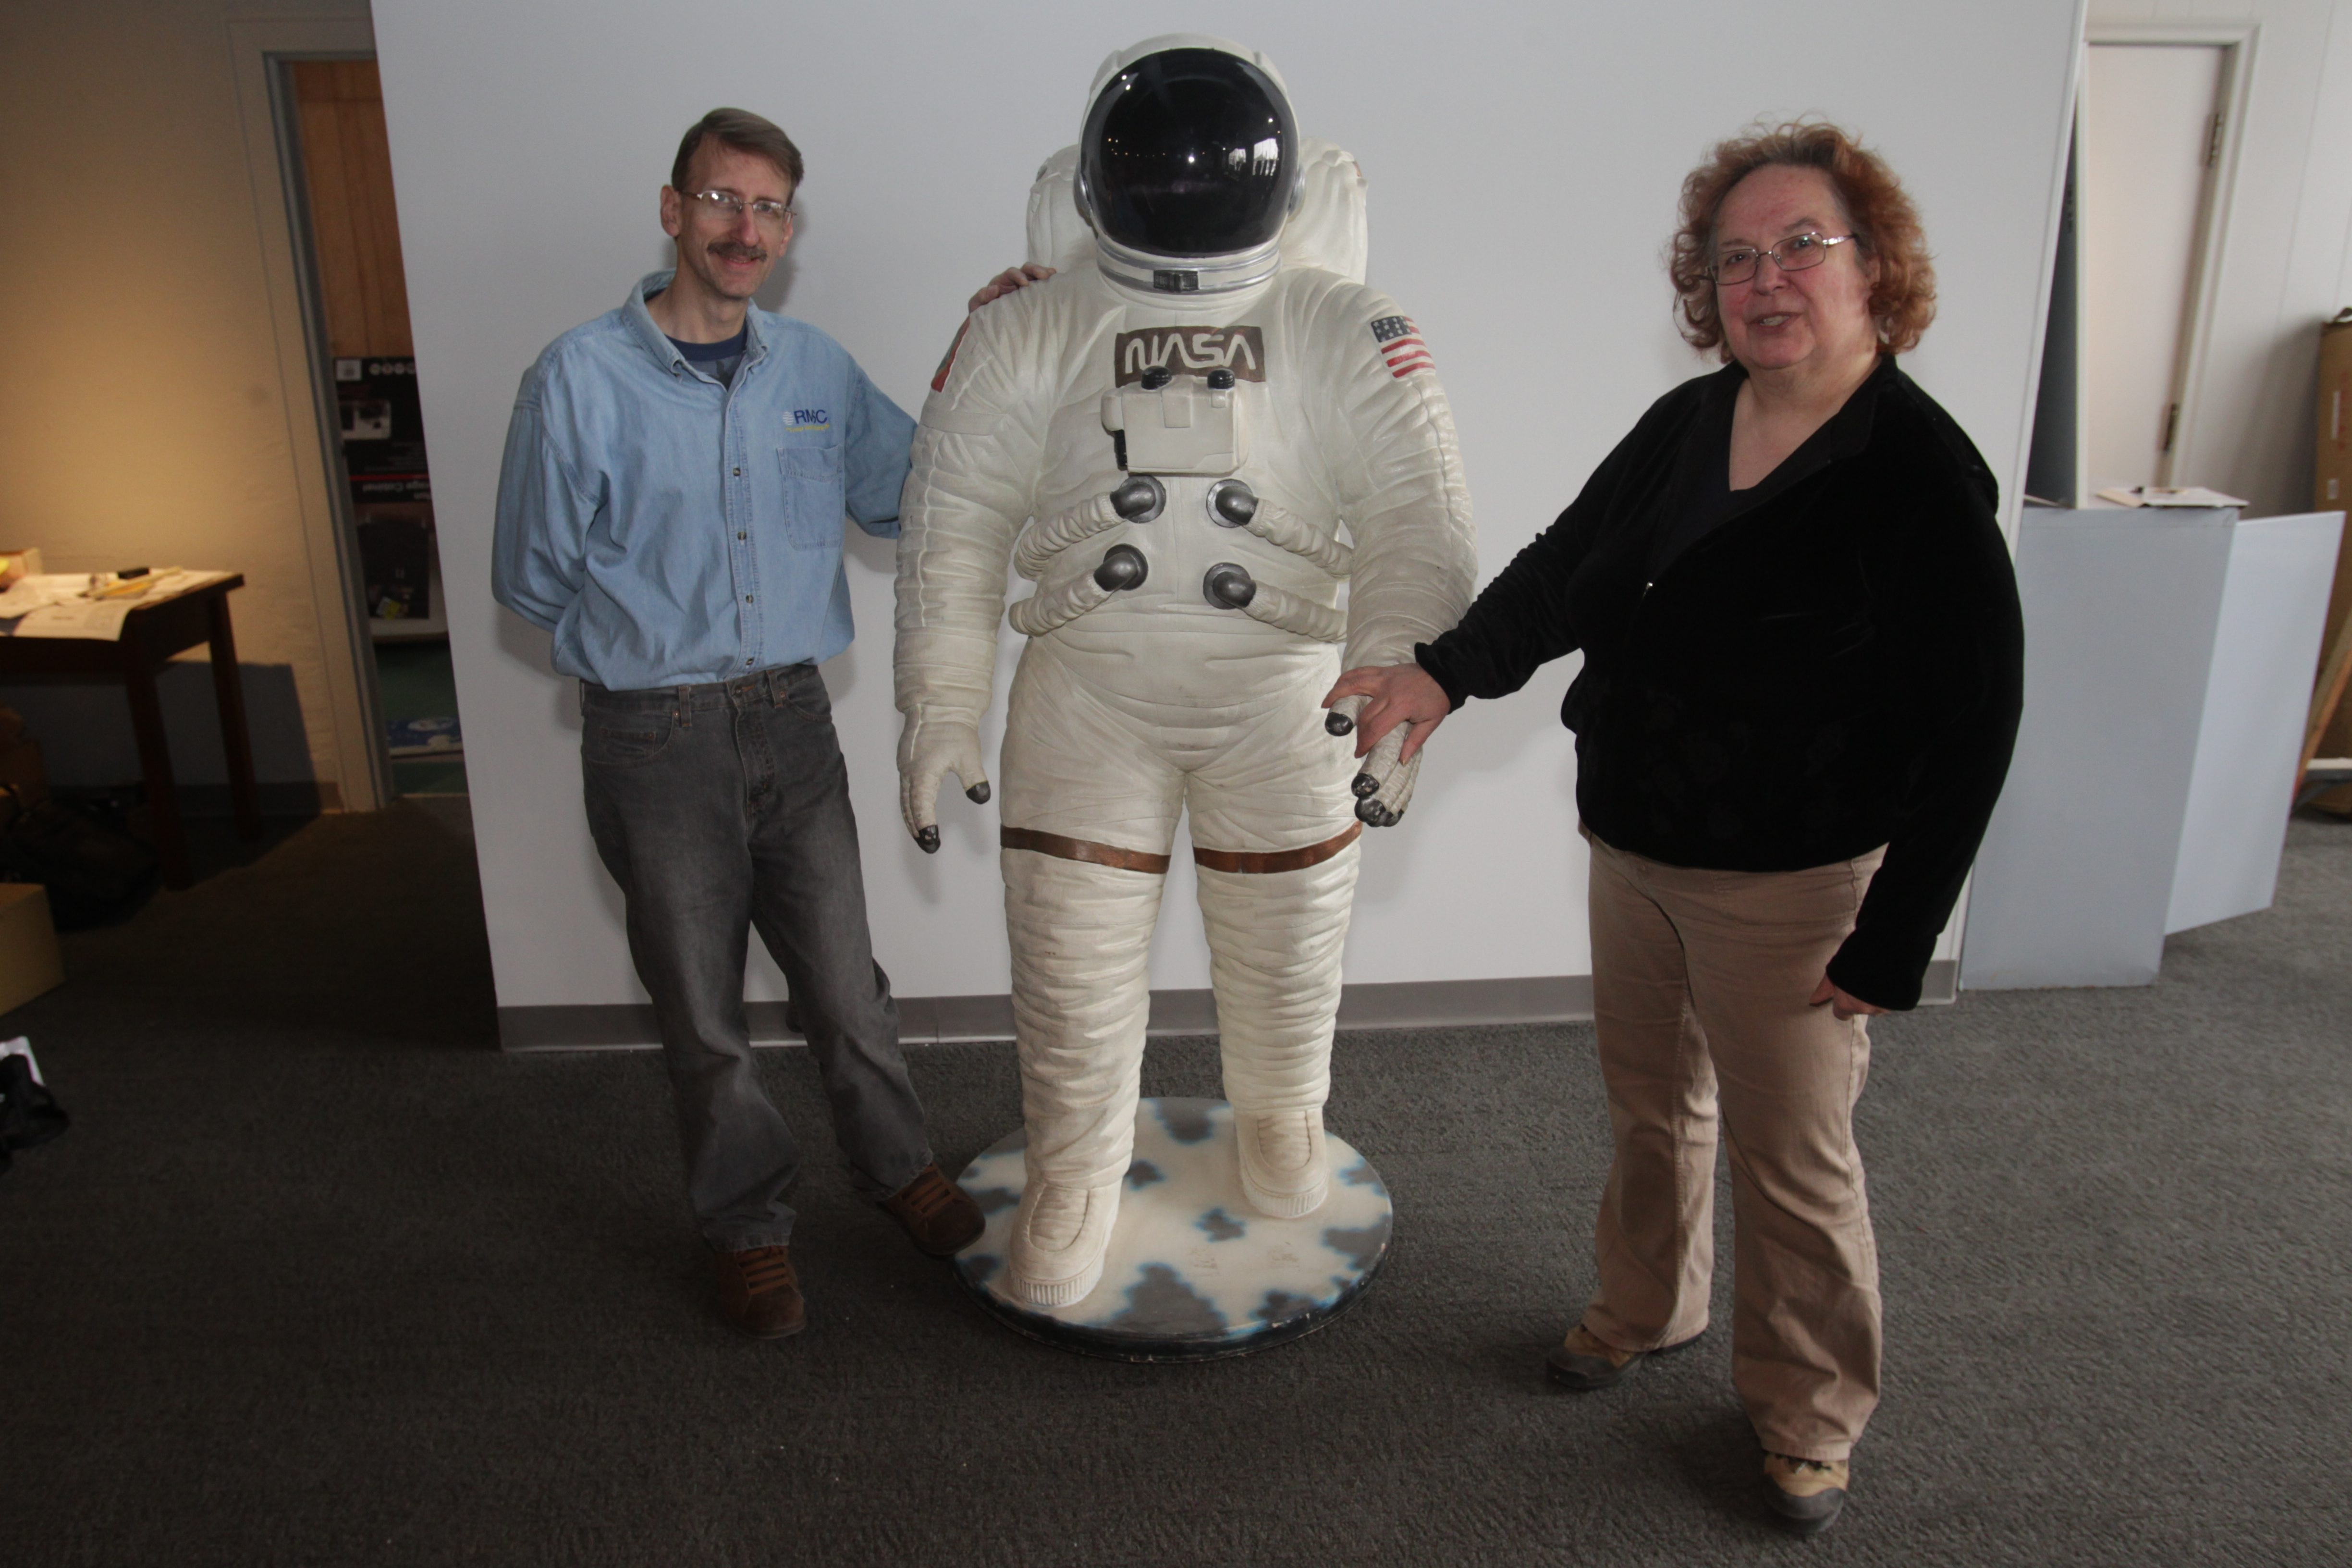 Kathy Michaels, director of soon-to-open Challenger Learning Center at Harrison Place in Lockport, and Paul Krupinski, who runs the planetarium, ensure that details of imitation astronaut Biff are authentic for display at 5,500-square-foot site.